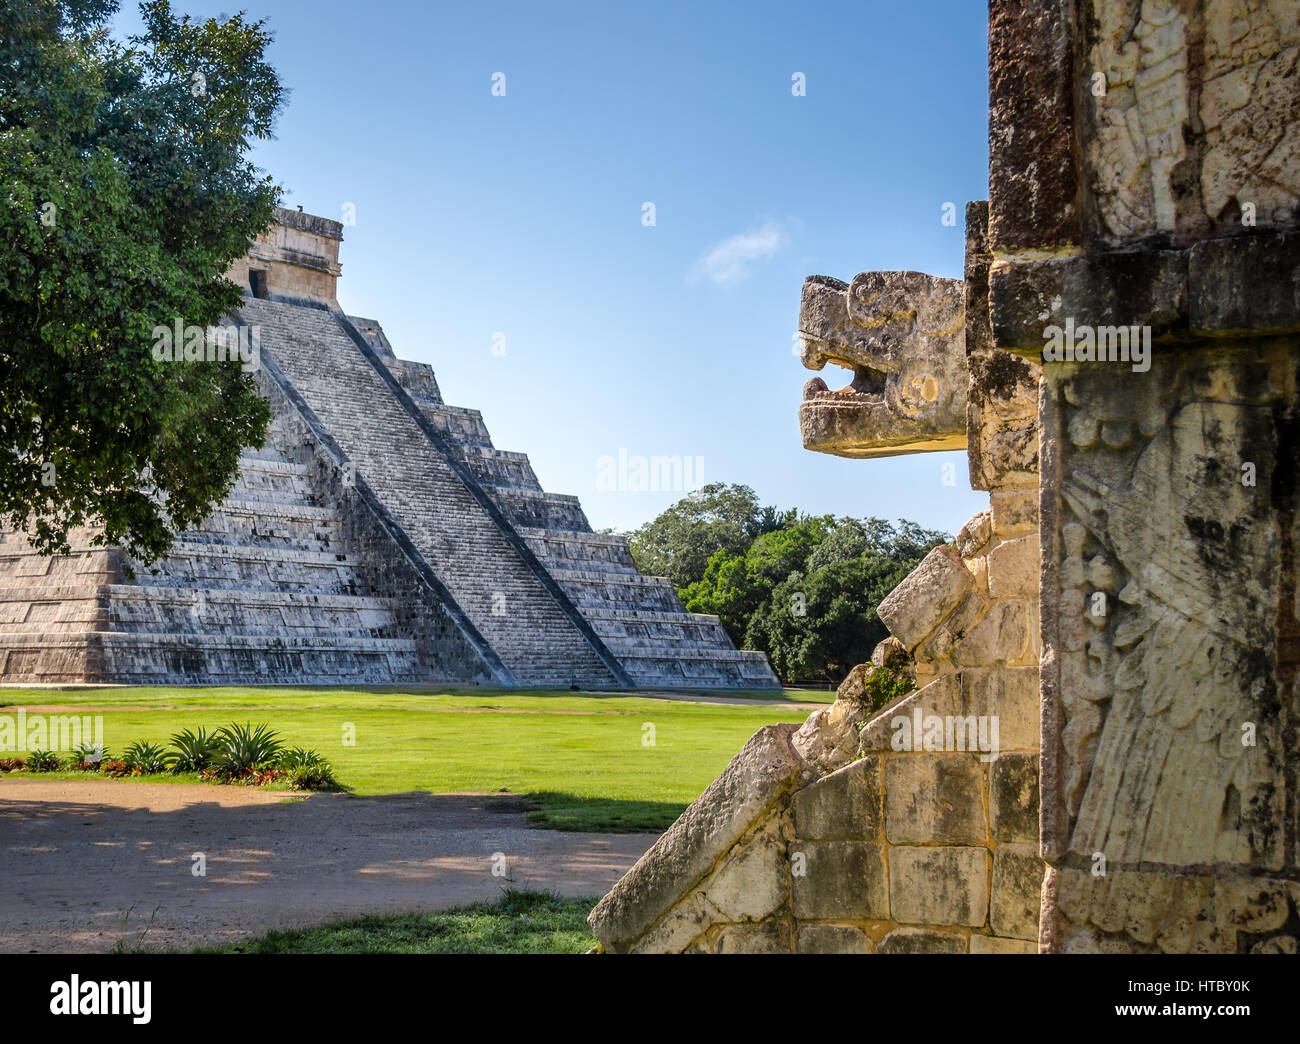 Jaguar head and Mayan Temple pyramid  of Kukulkan - Chichen Itza, Yucatan, Mexico - Stock Image